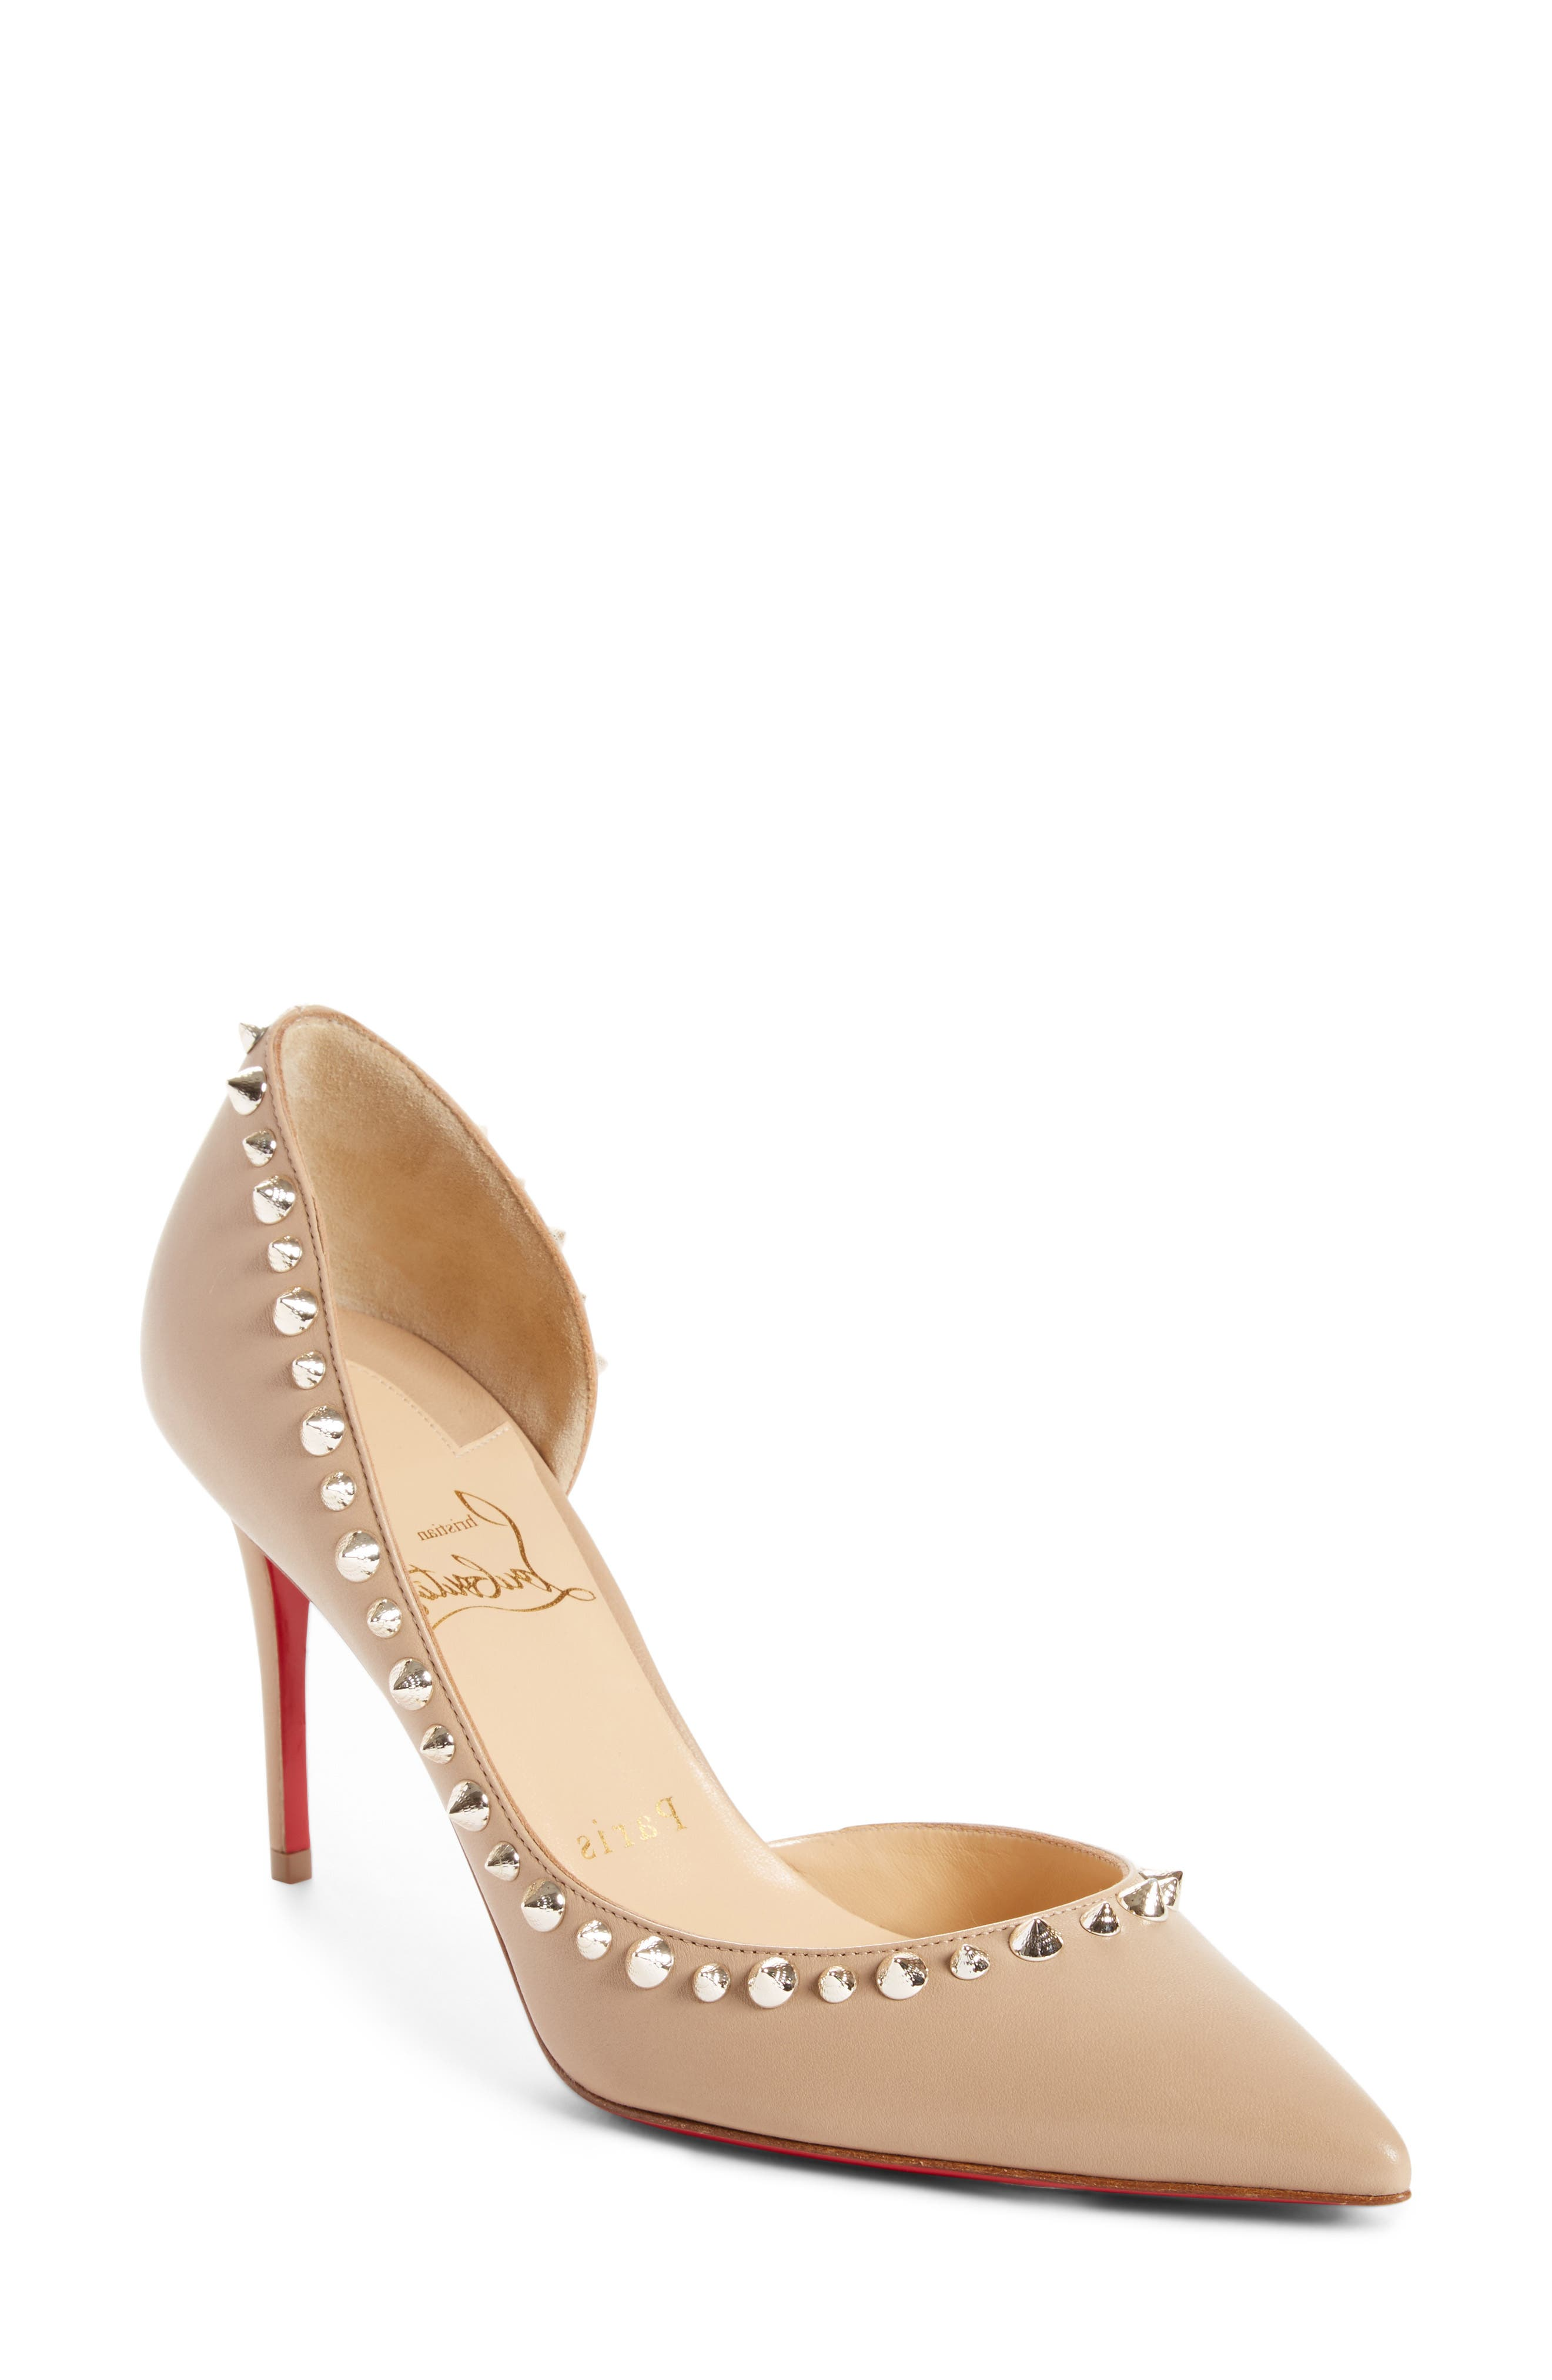 Irishell Studded Half d'Orsay Pump,                             Main thumbnail 1, color,                             NUDE/ WHITE GOLD